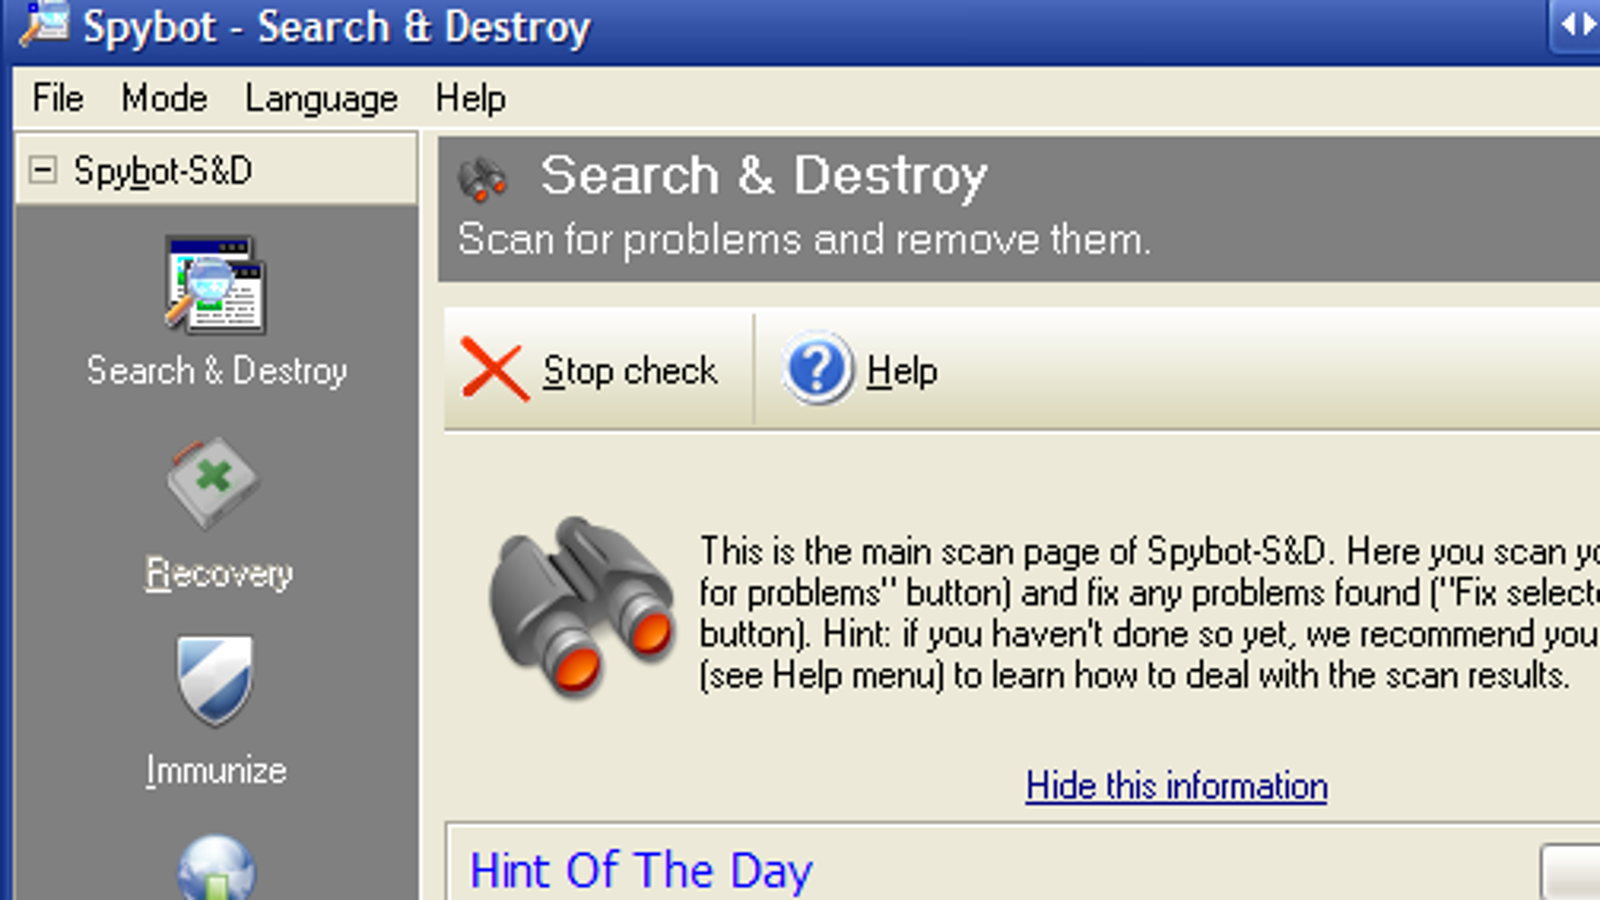 spybot search destroy official page